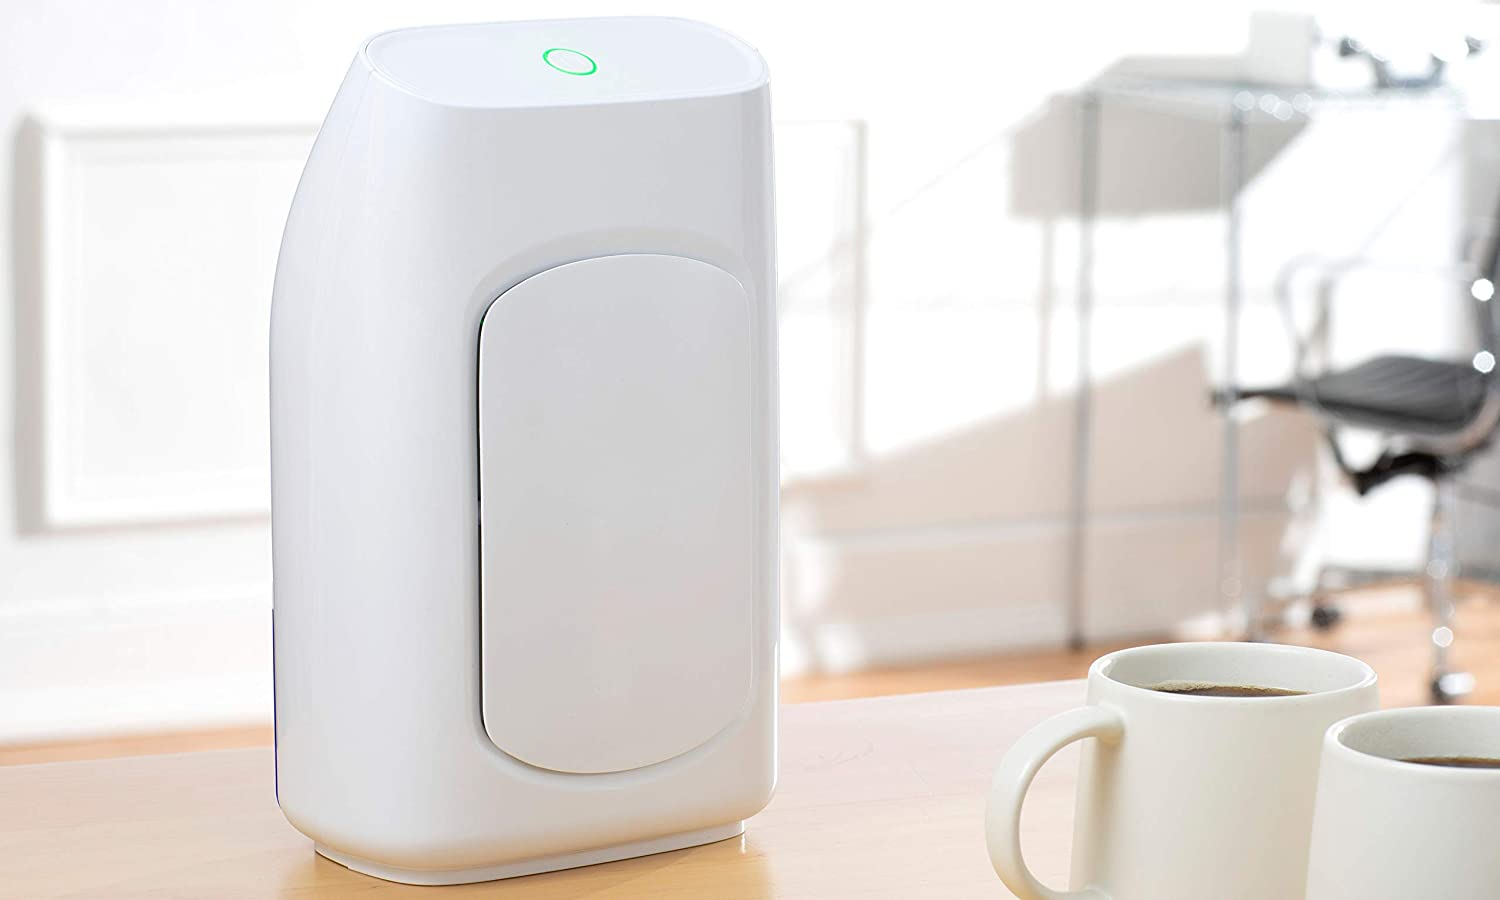 Fine Elements 700ml Electric Home Dehumidifier, Allergy Relieving Air Moisture and Mould Remover for Bedroom, Kitchen, Office Use